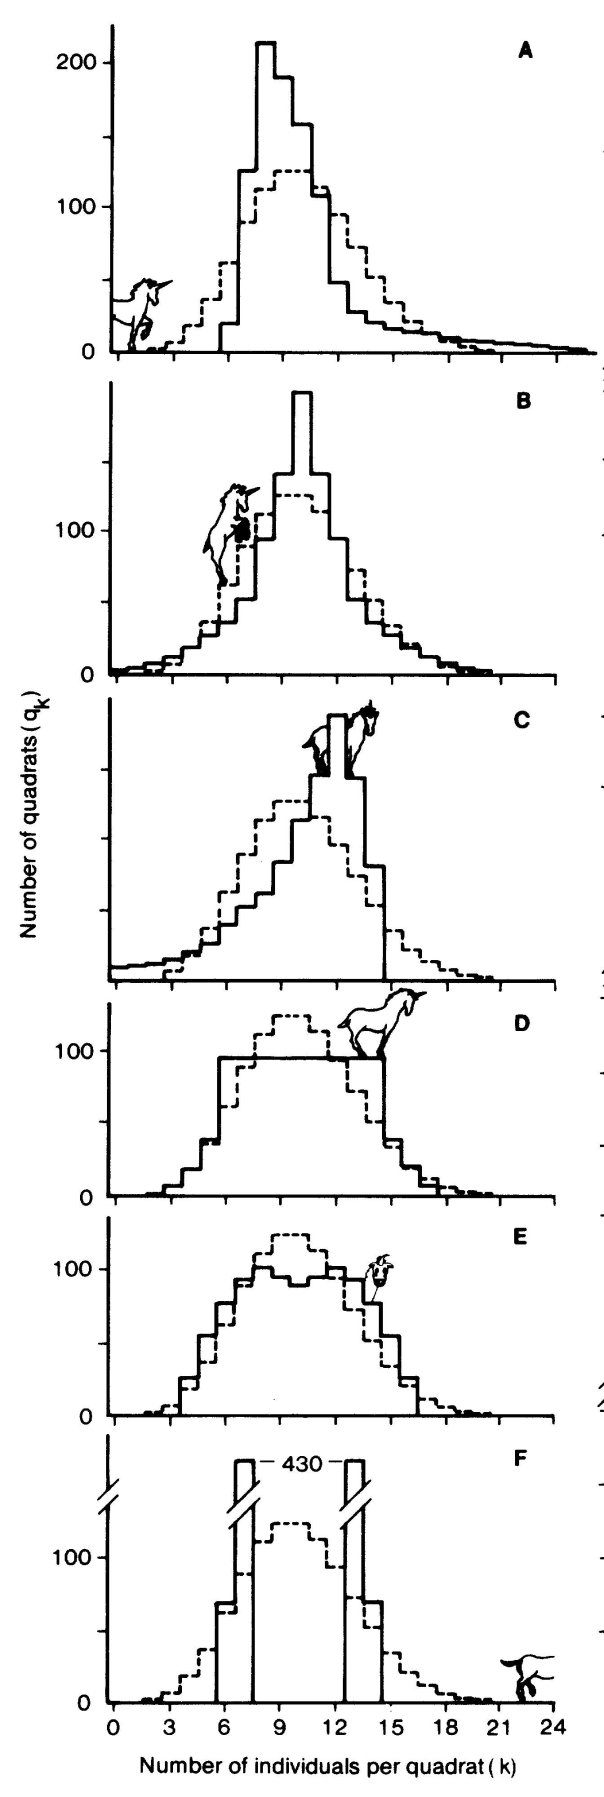 Part of Figure 1 from Hurlbert 1990